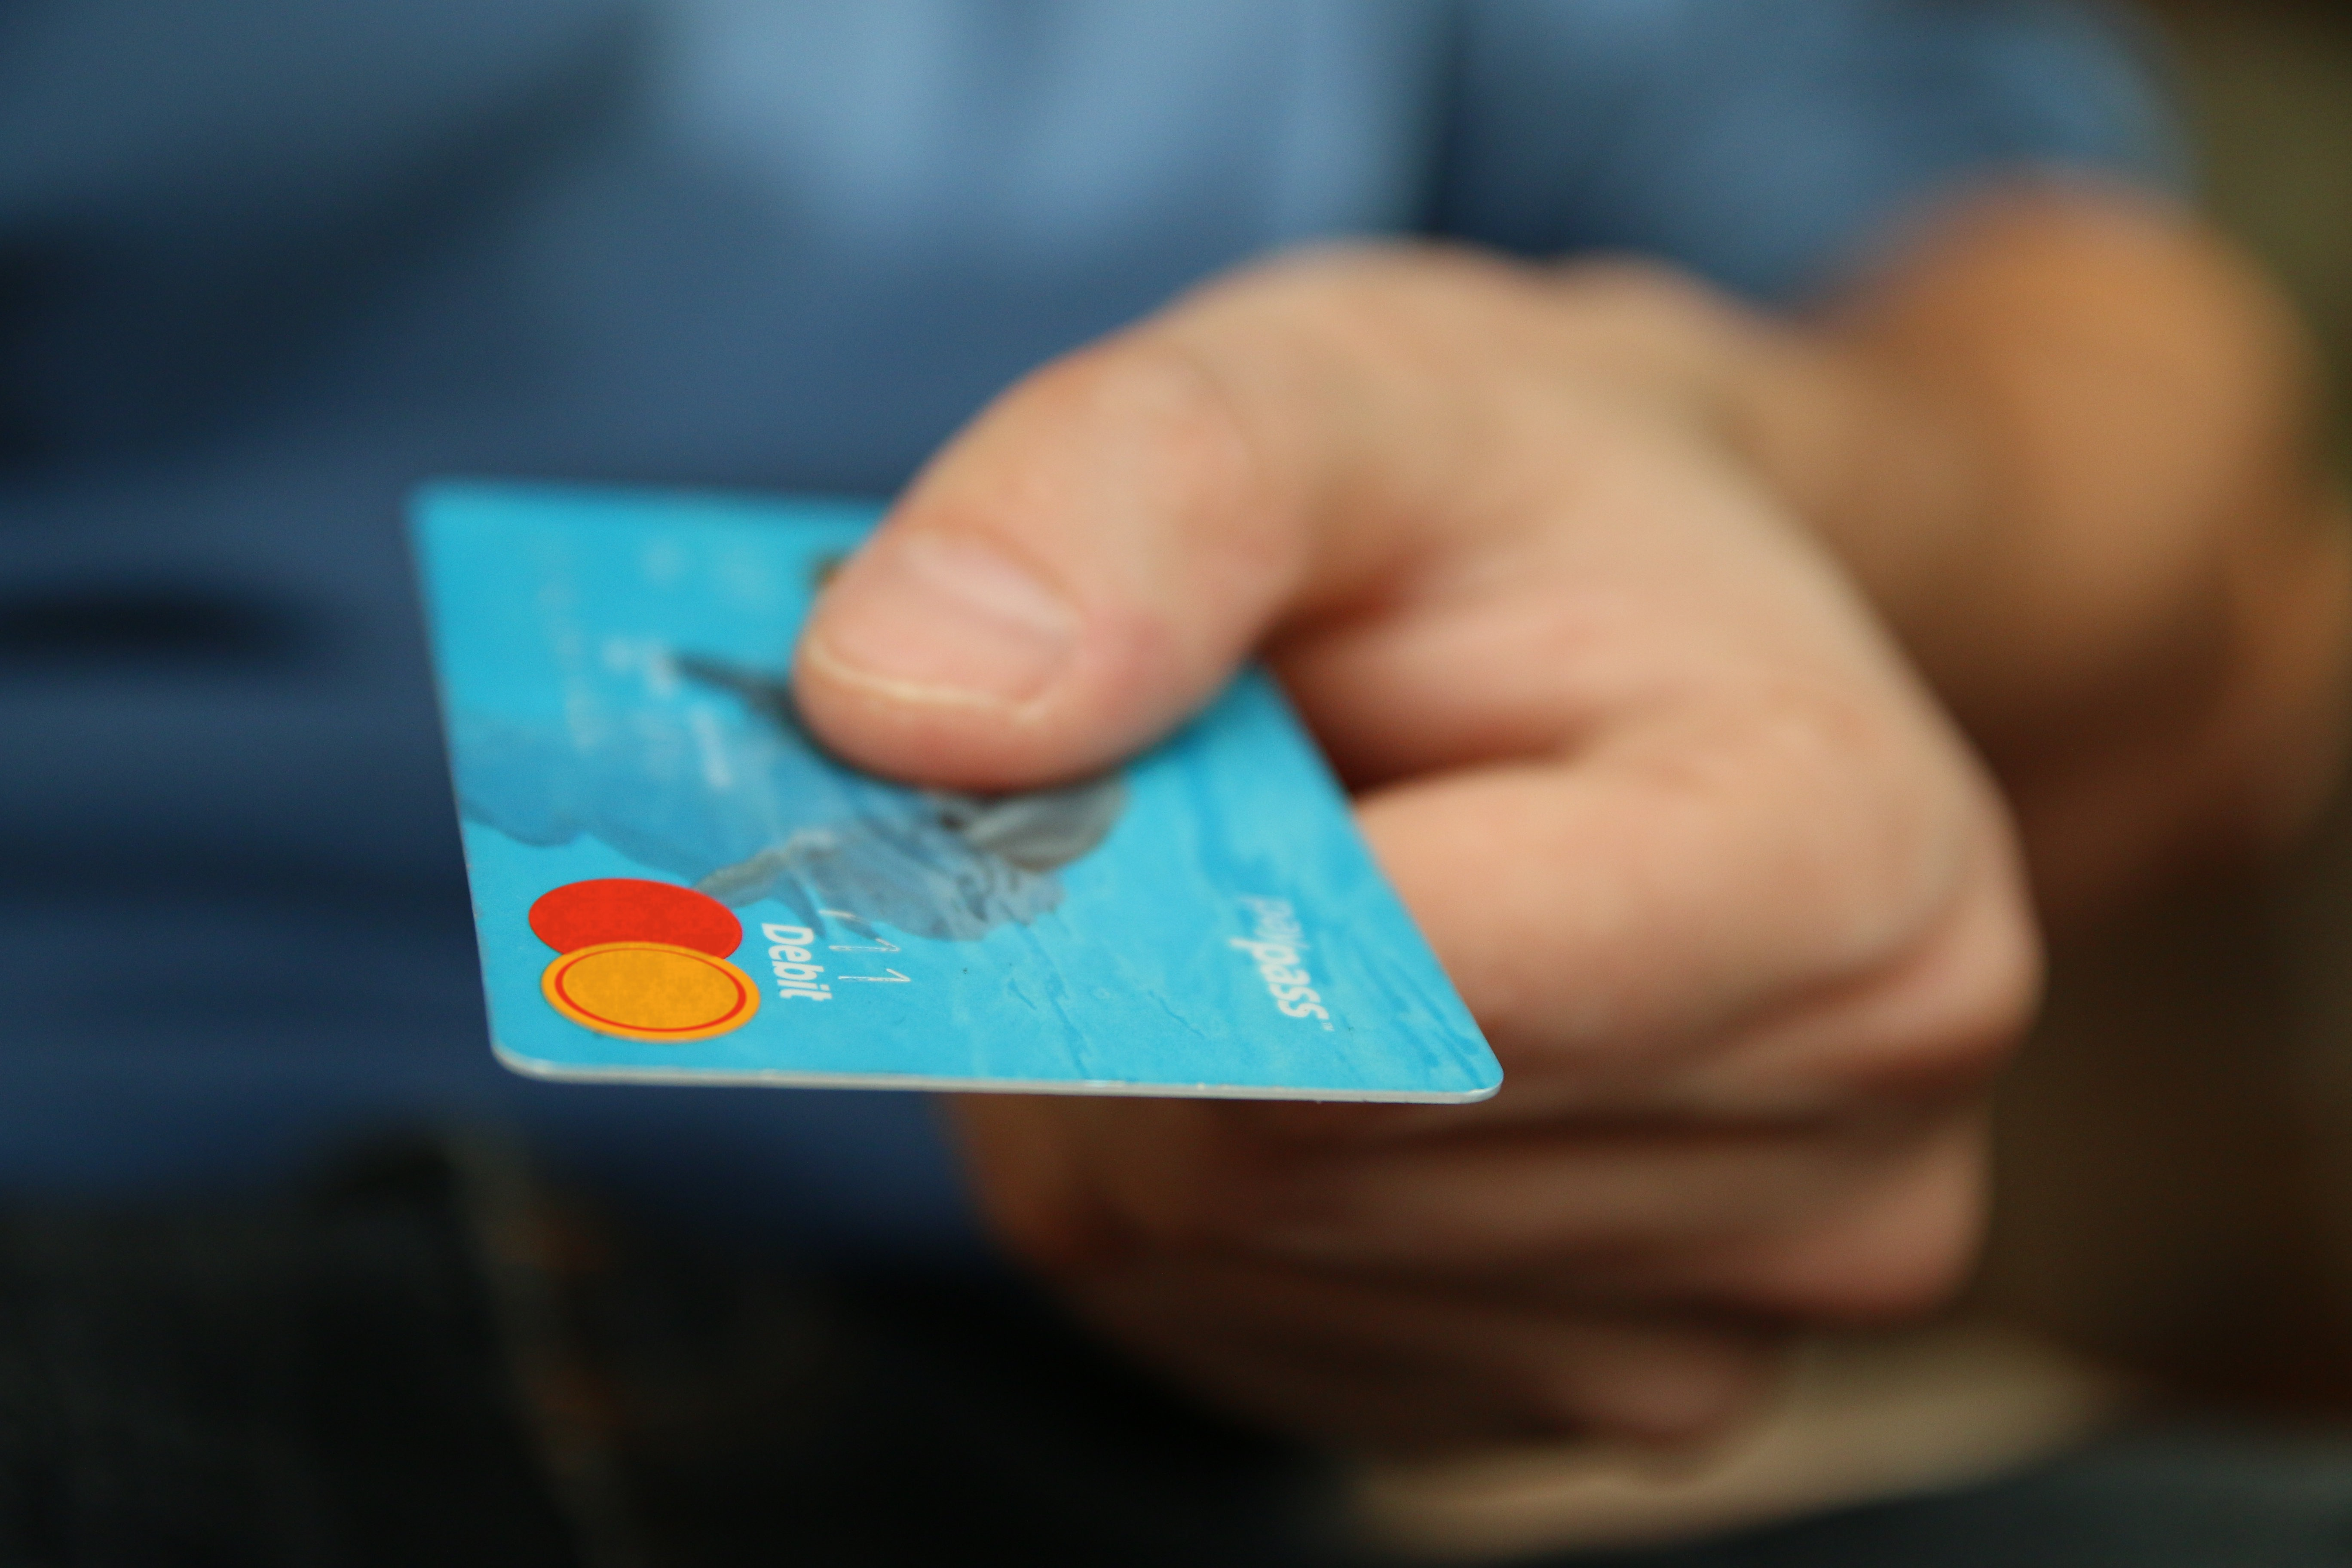 commercial bank credit card application